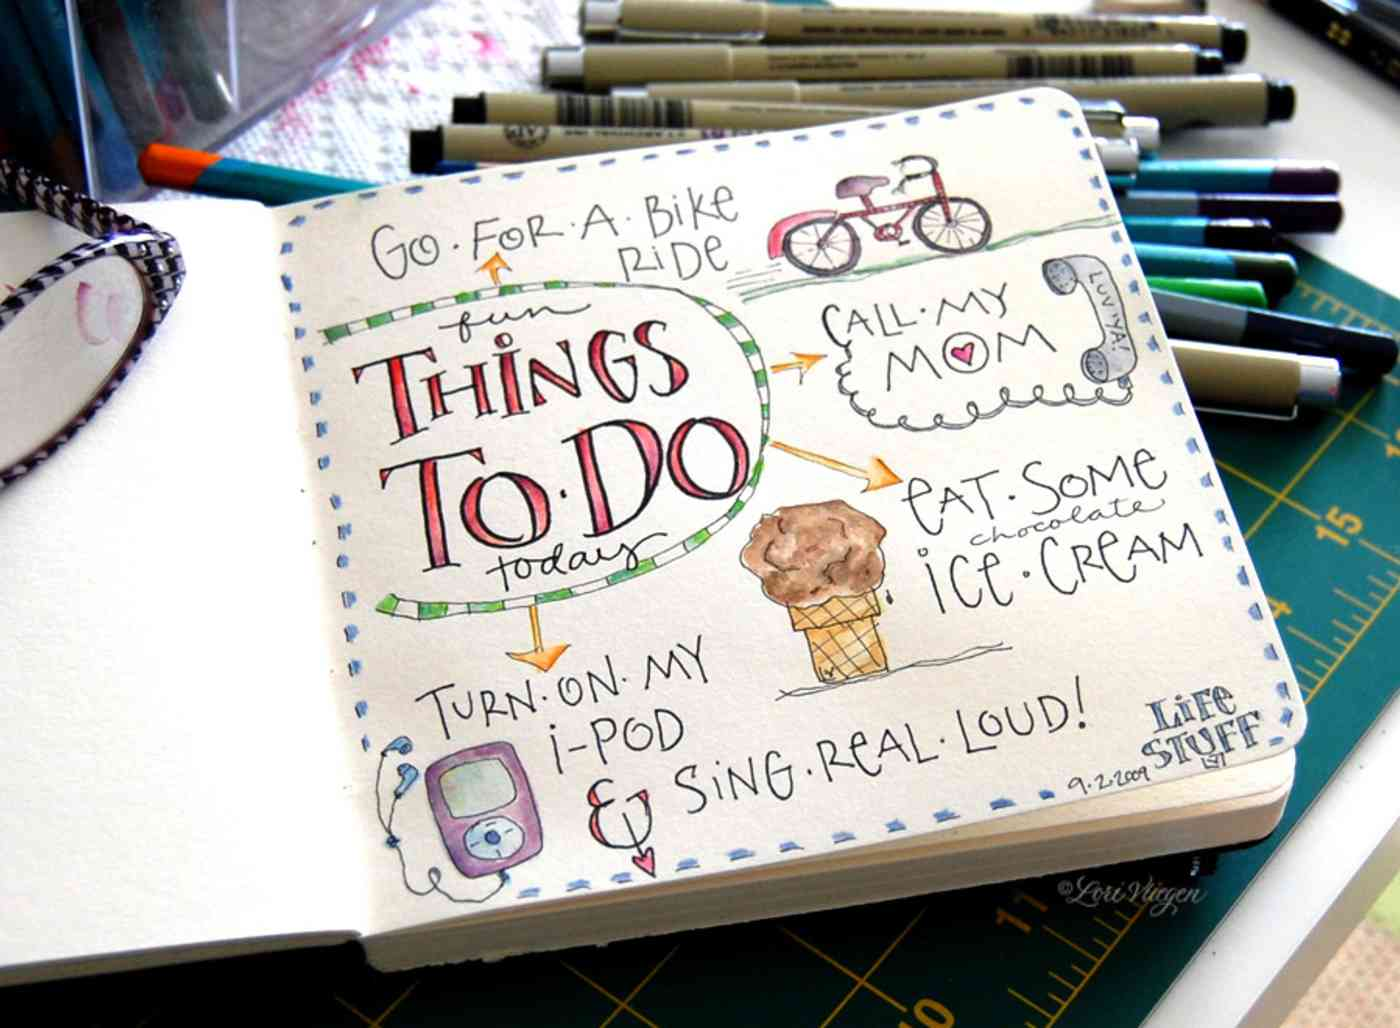 doodled to-do list